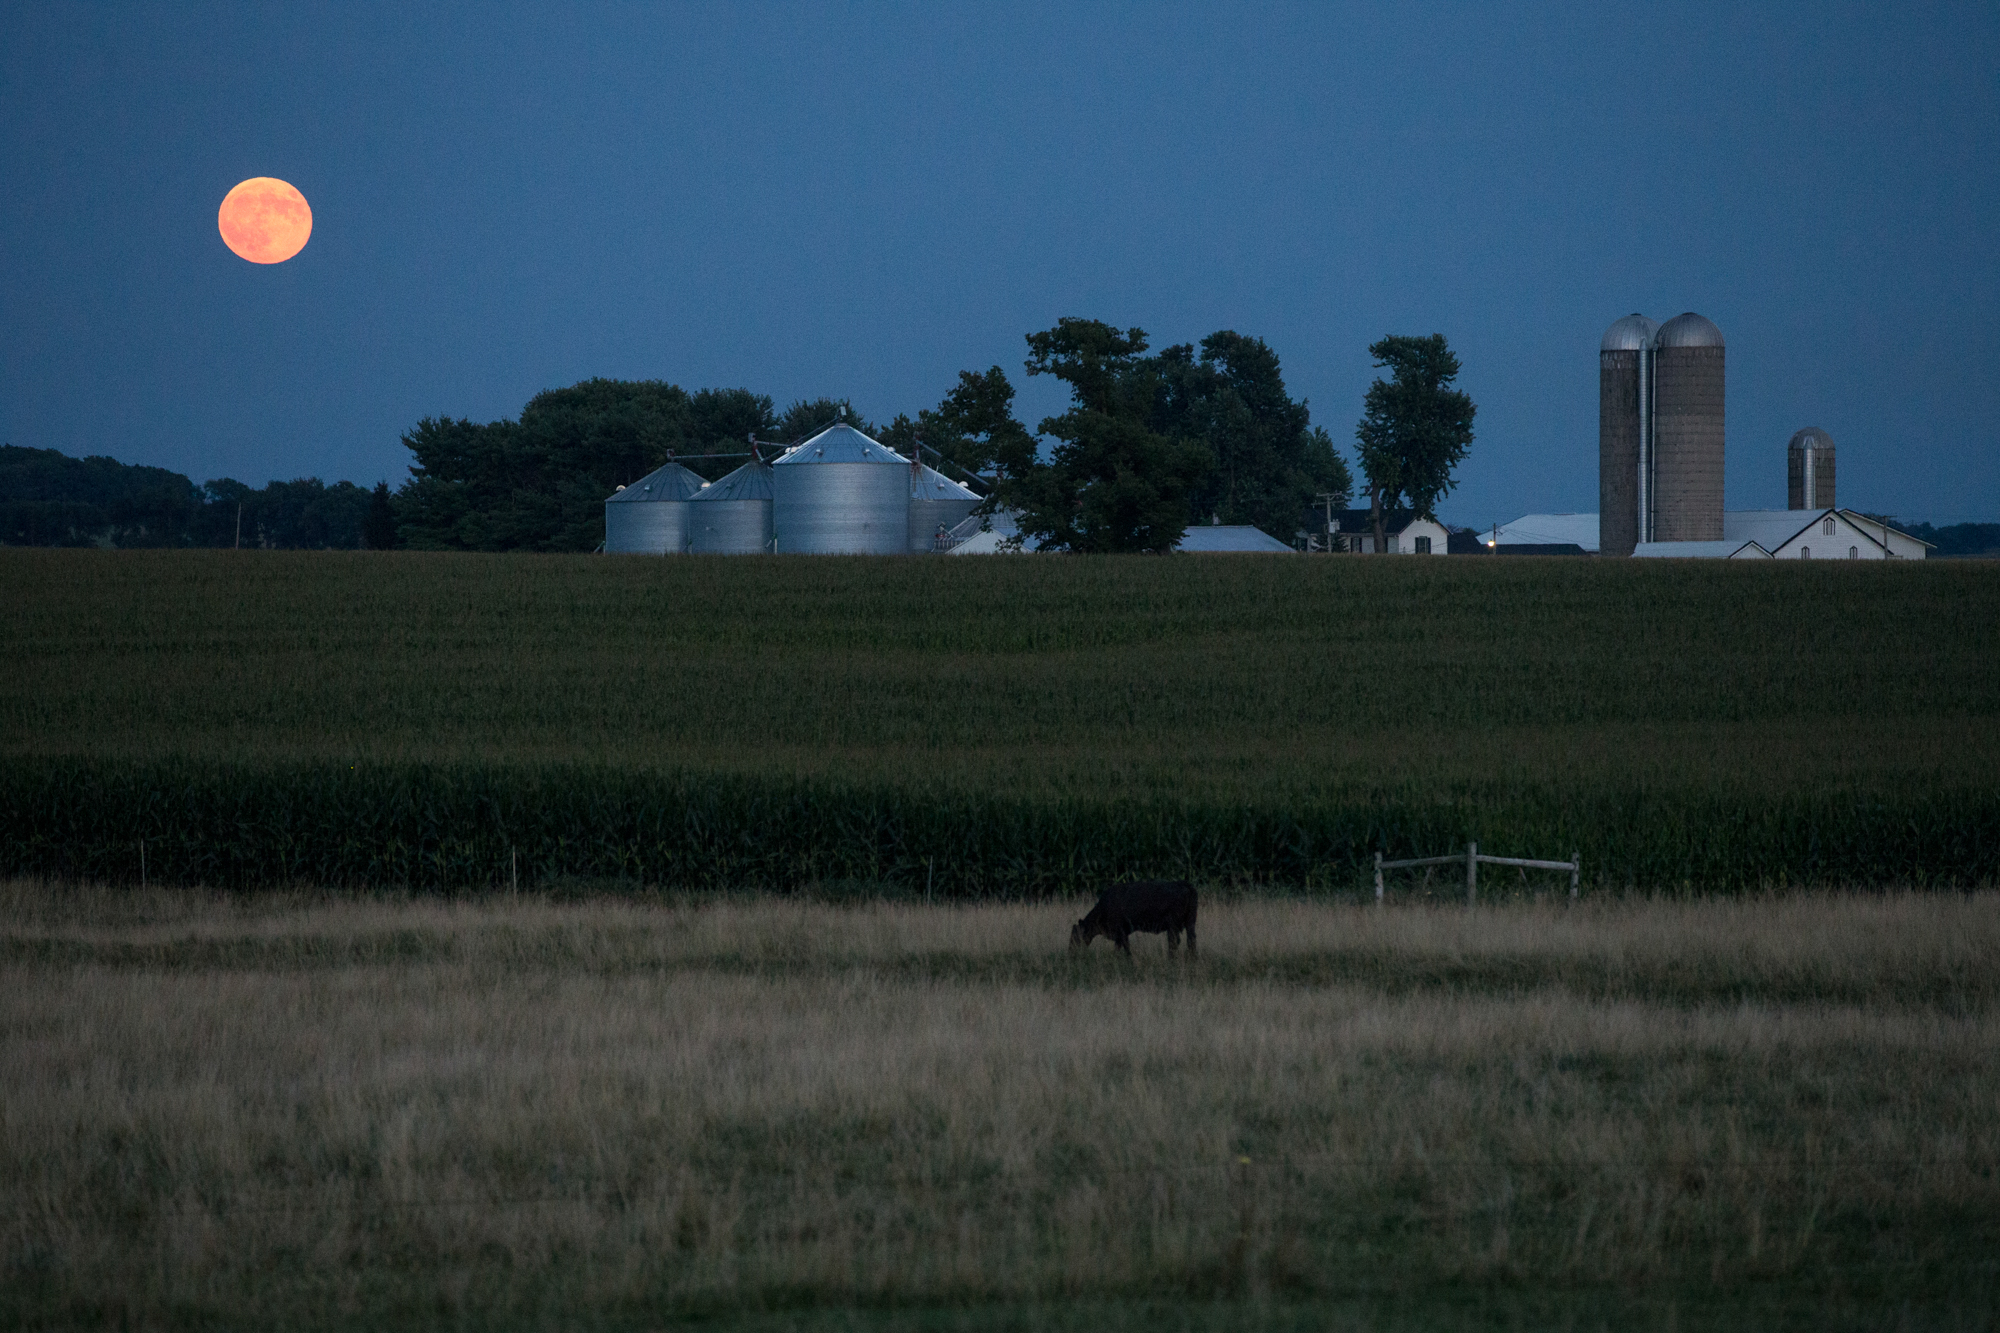 "A full moon rises on the horizon as cows graze in a field on Friday, July 27, 2018, at South Farwell Bridge Road in Pecatonica, Illinois. According to the Associated Press, Friday night marked a ""blood moon"" lunar eclipse that was visible at different times in Australia, Africa, Asia, Europe and South America when the sun, Earth and moon lined up perfectly, casting Earth's shadow on the moon. The total eclipse lasted 1 hour and 43 minutes, with the entire event lasting closer to four hours. North America missed out on the eclipse but can look forward to the next one on Jan. 21, 2019, according to NASA. [SCOTT P. YATES/RRSTAR.COM & THE JOURNAL-STANDARD STAFF]"